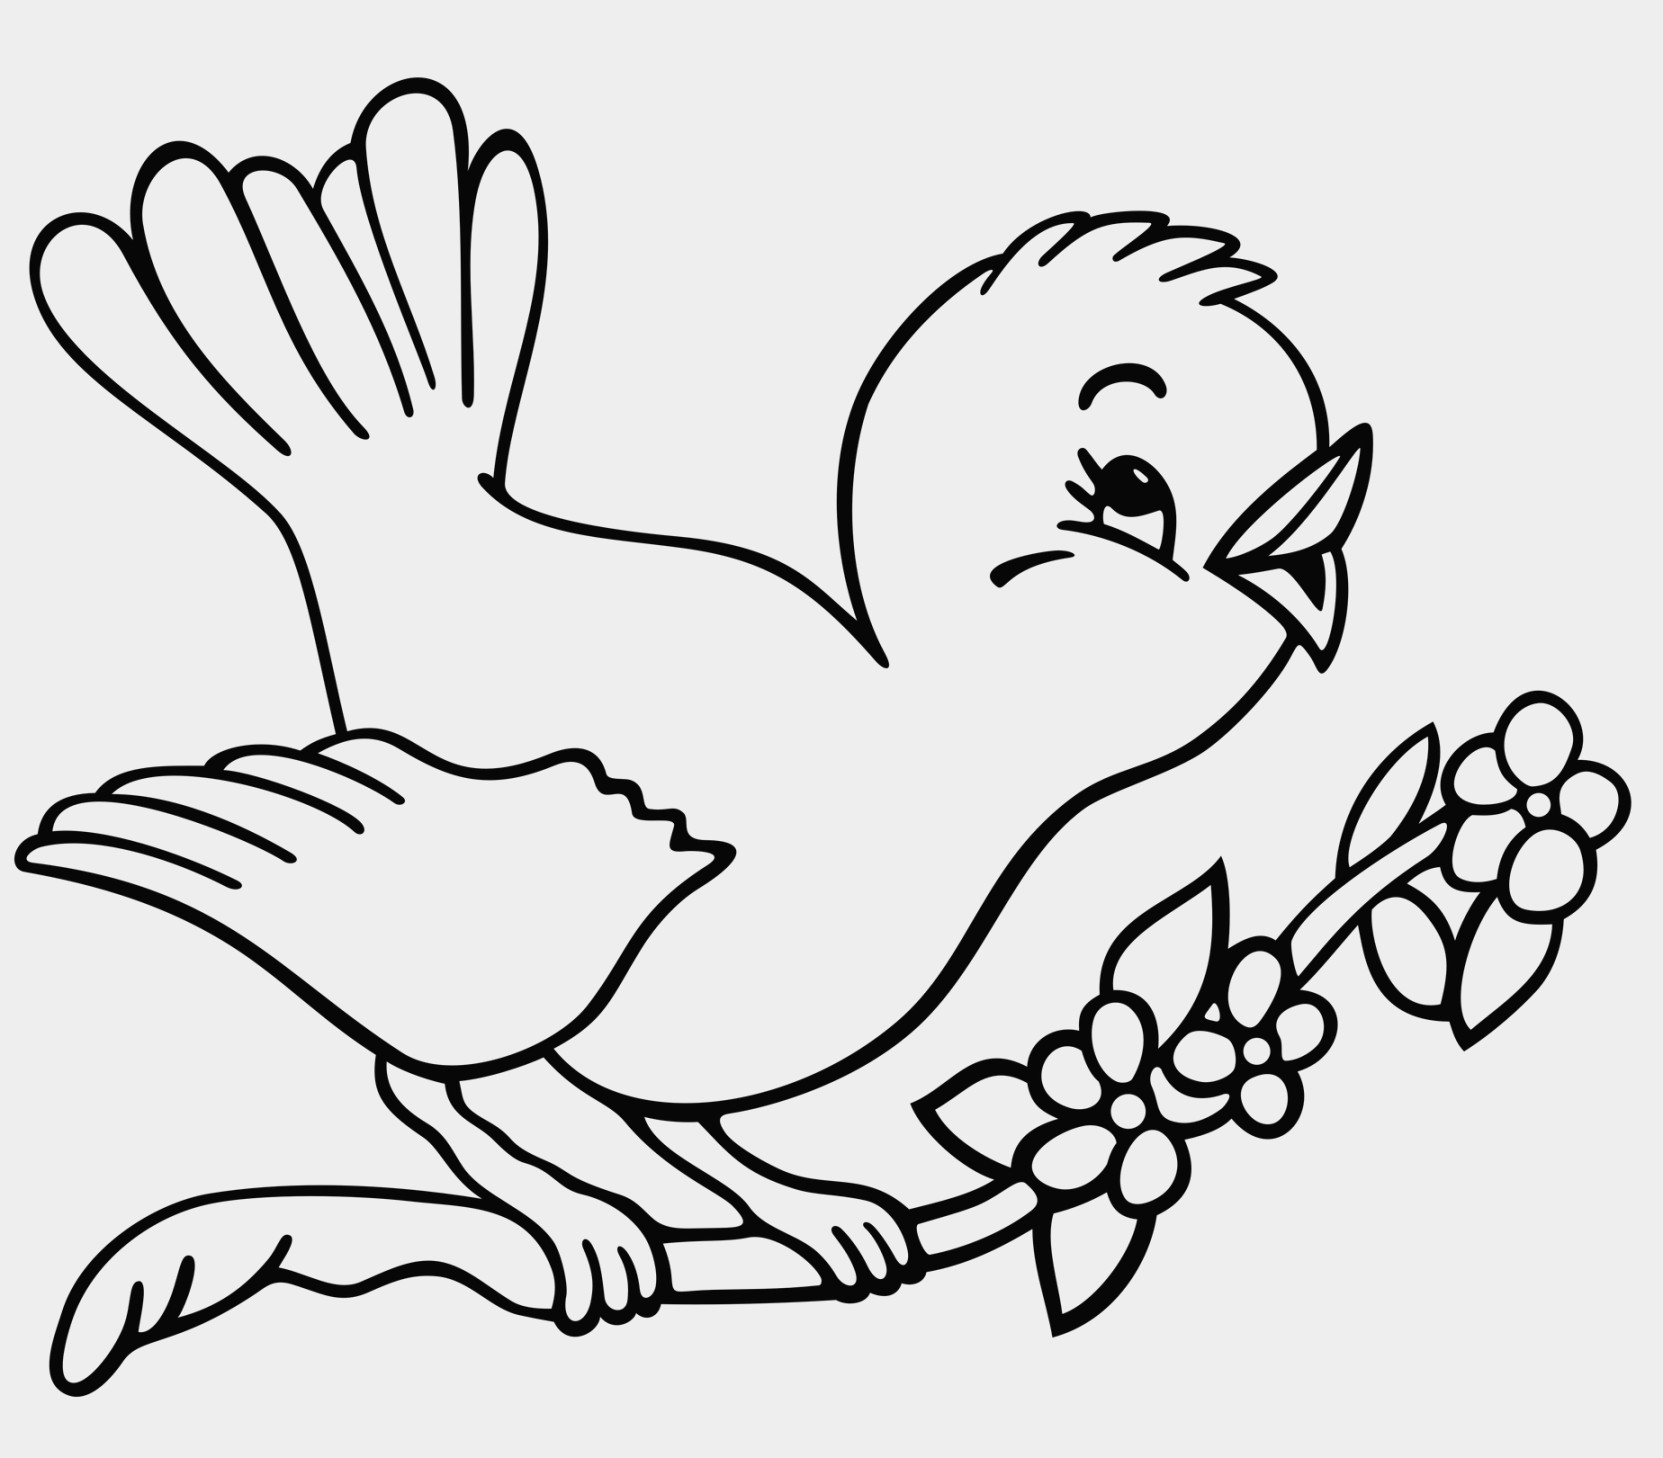 1663x1458 Birdhouse Coloring Pages Beautiful Whimsical Bird Houses Coloring